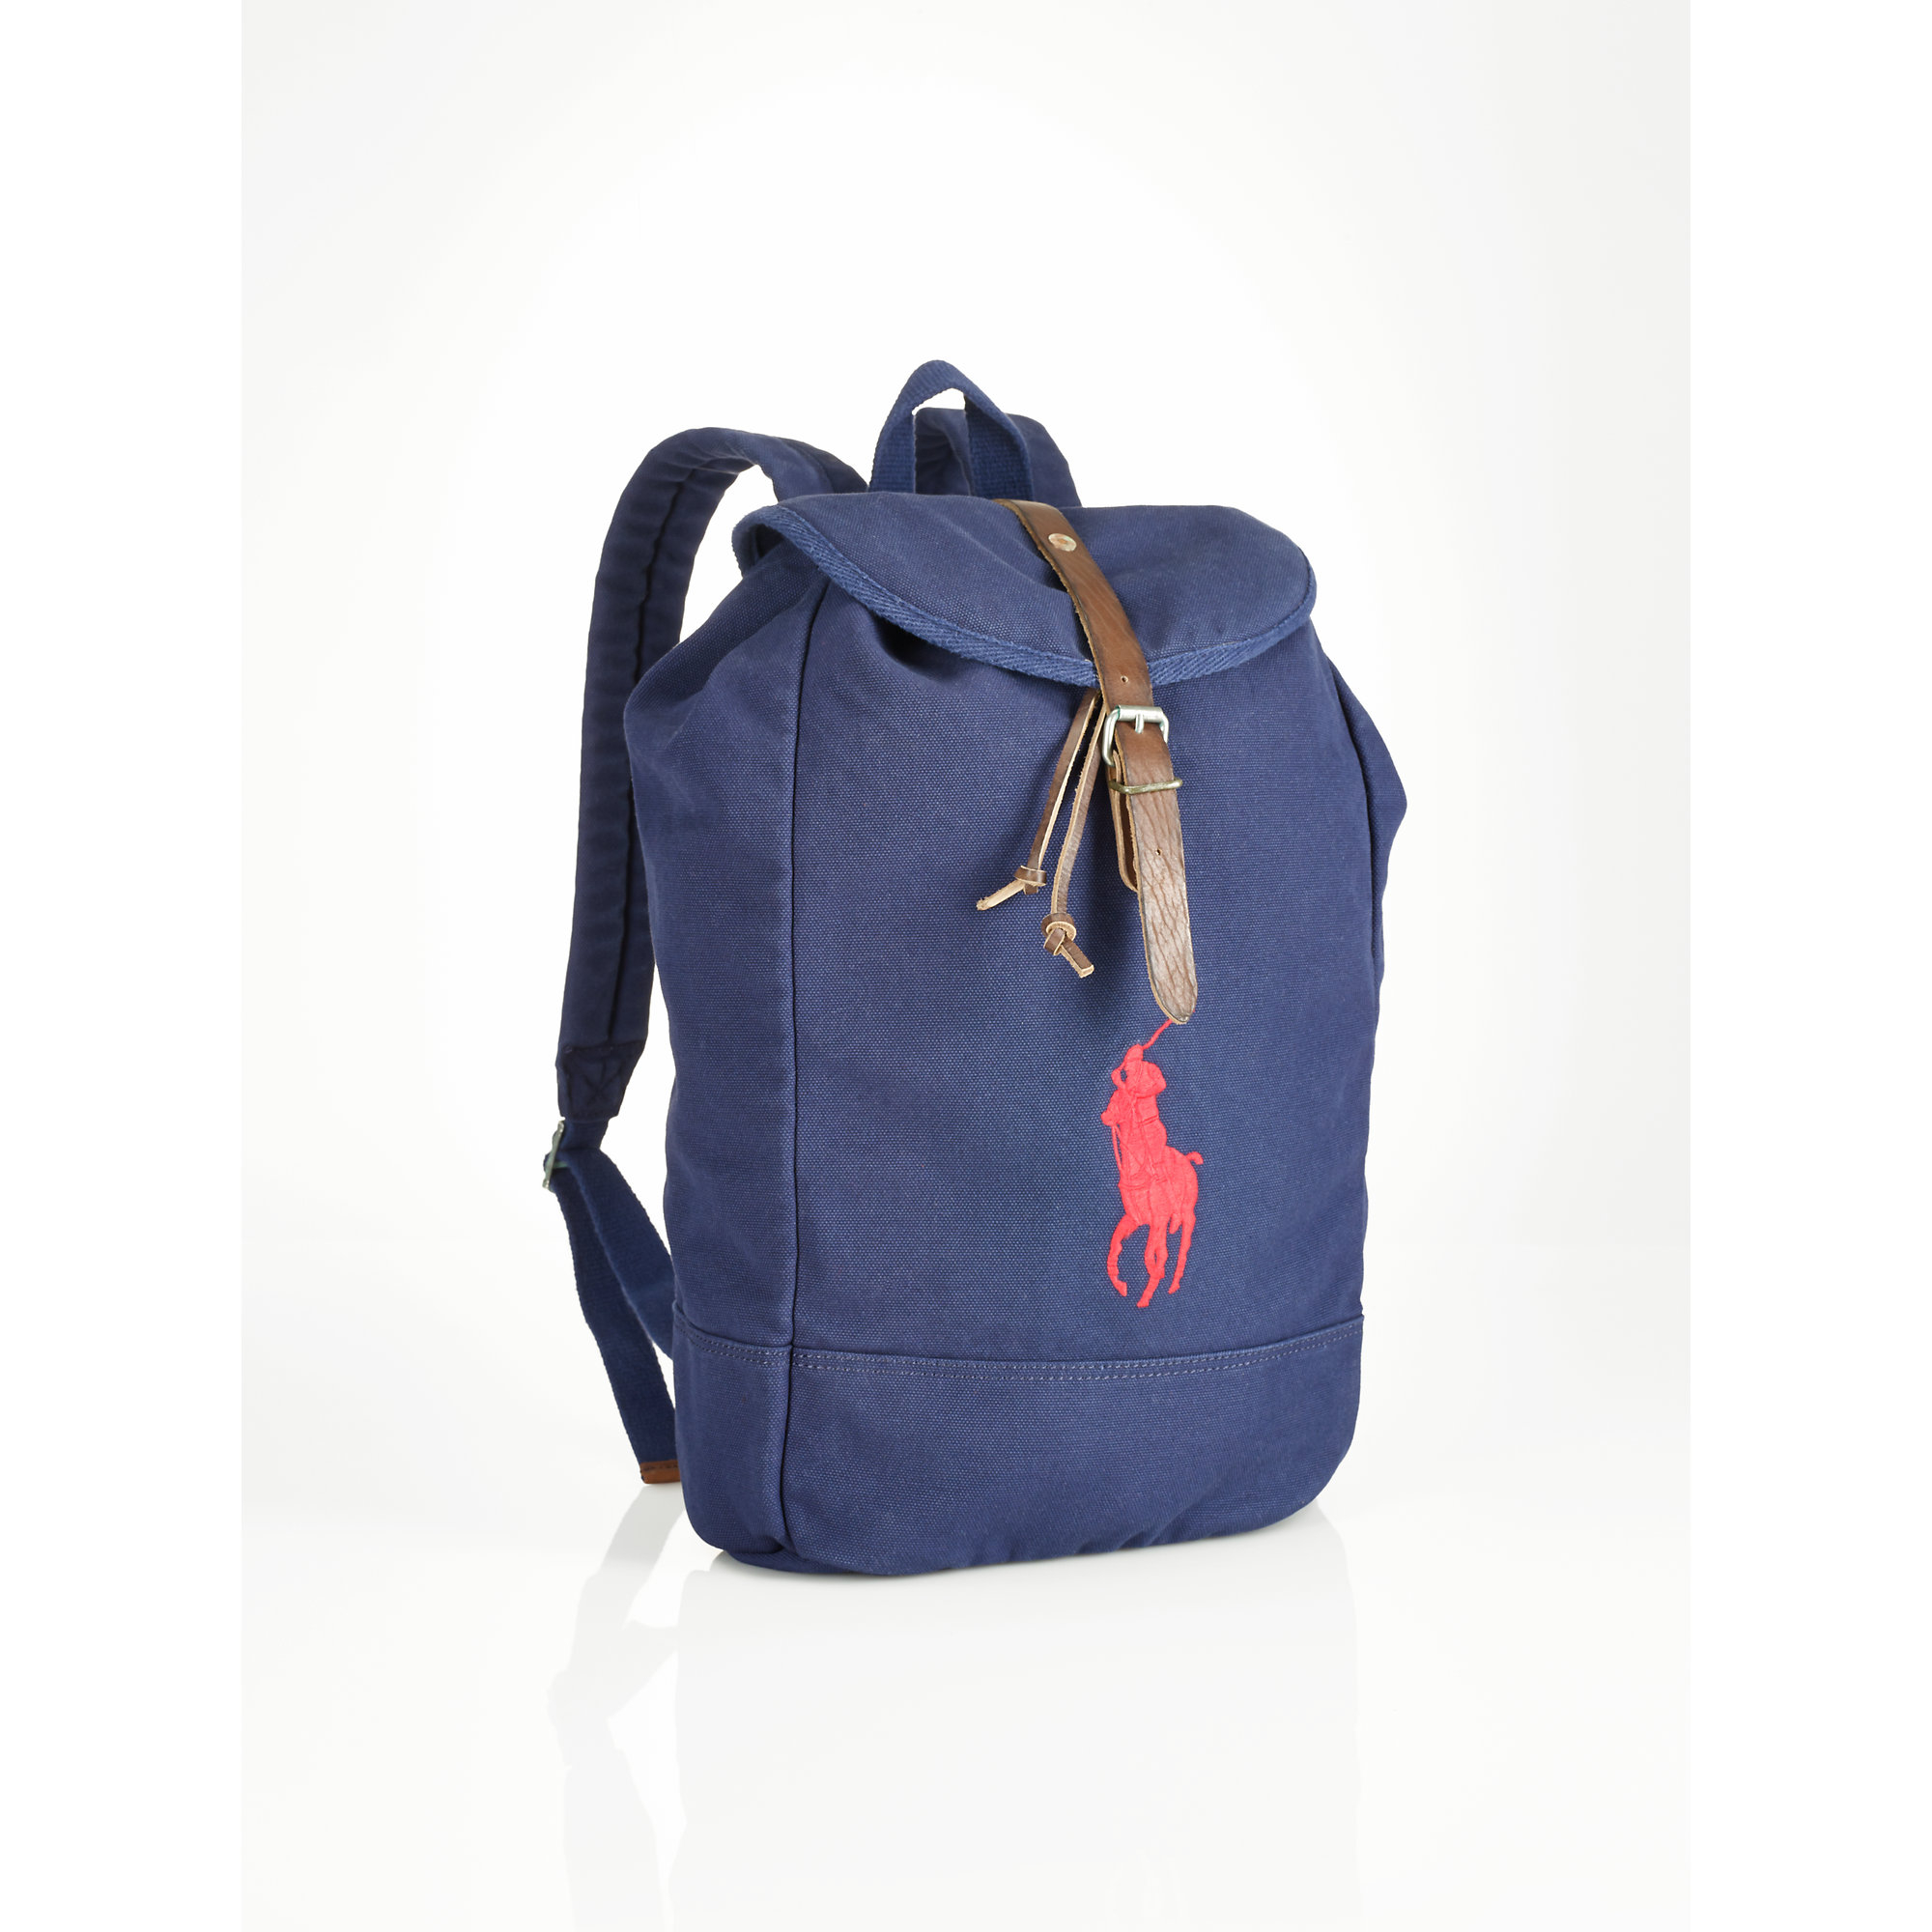 d51dc627d Polo Ralph Lauren Big Pony Backpack in Blue for Men - Lyst